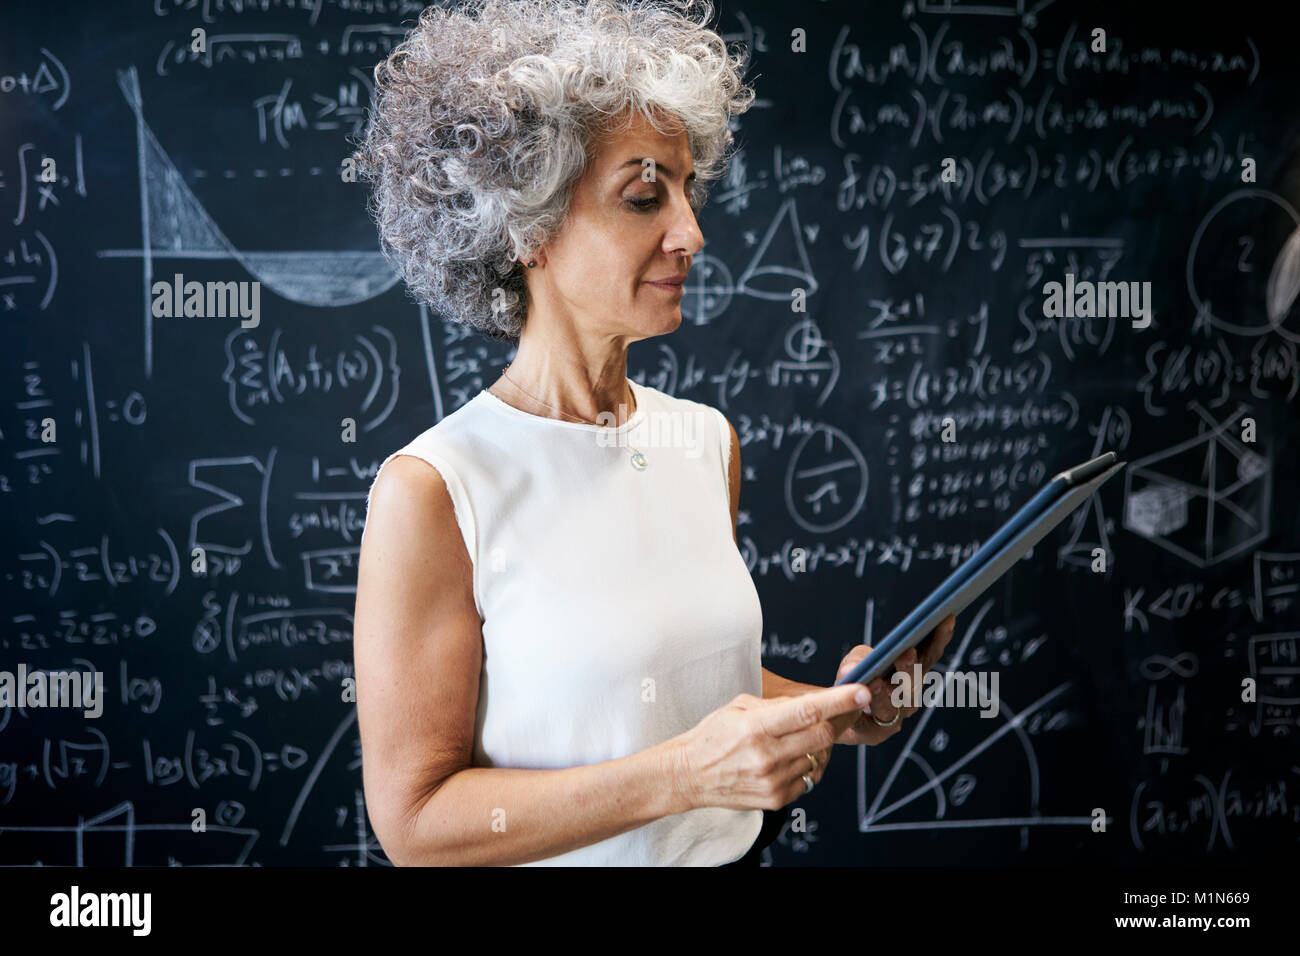 Middle aged academic woman working at blackboard - Stock Image